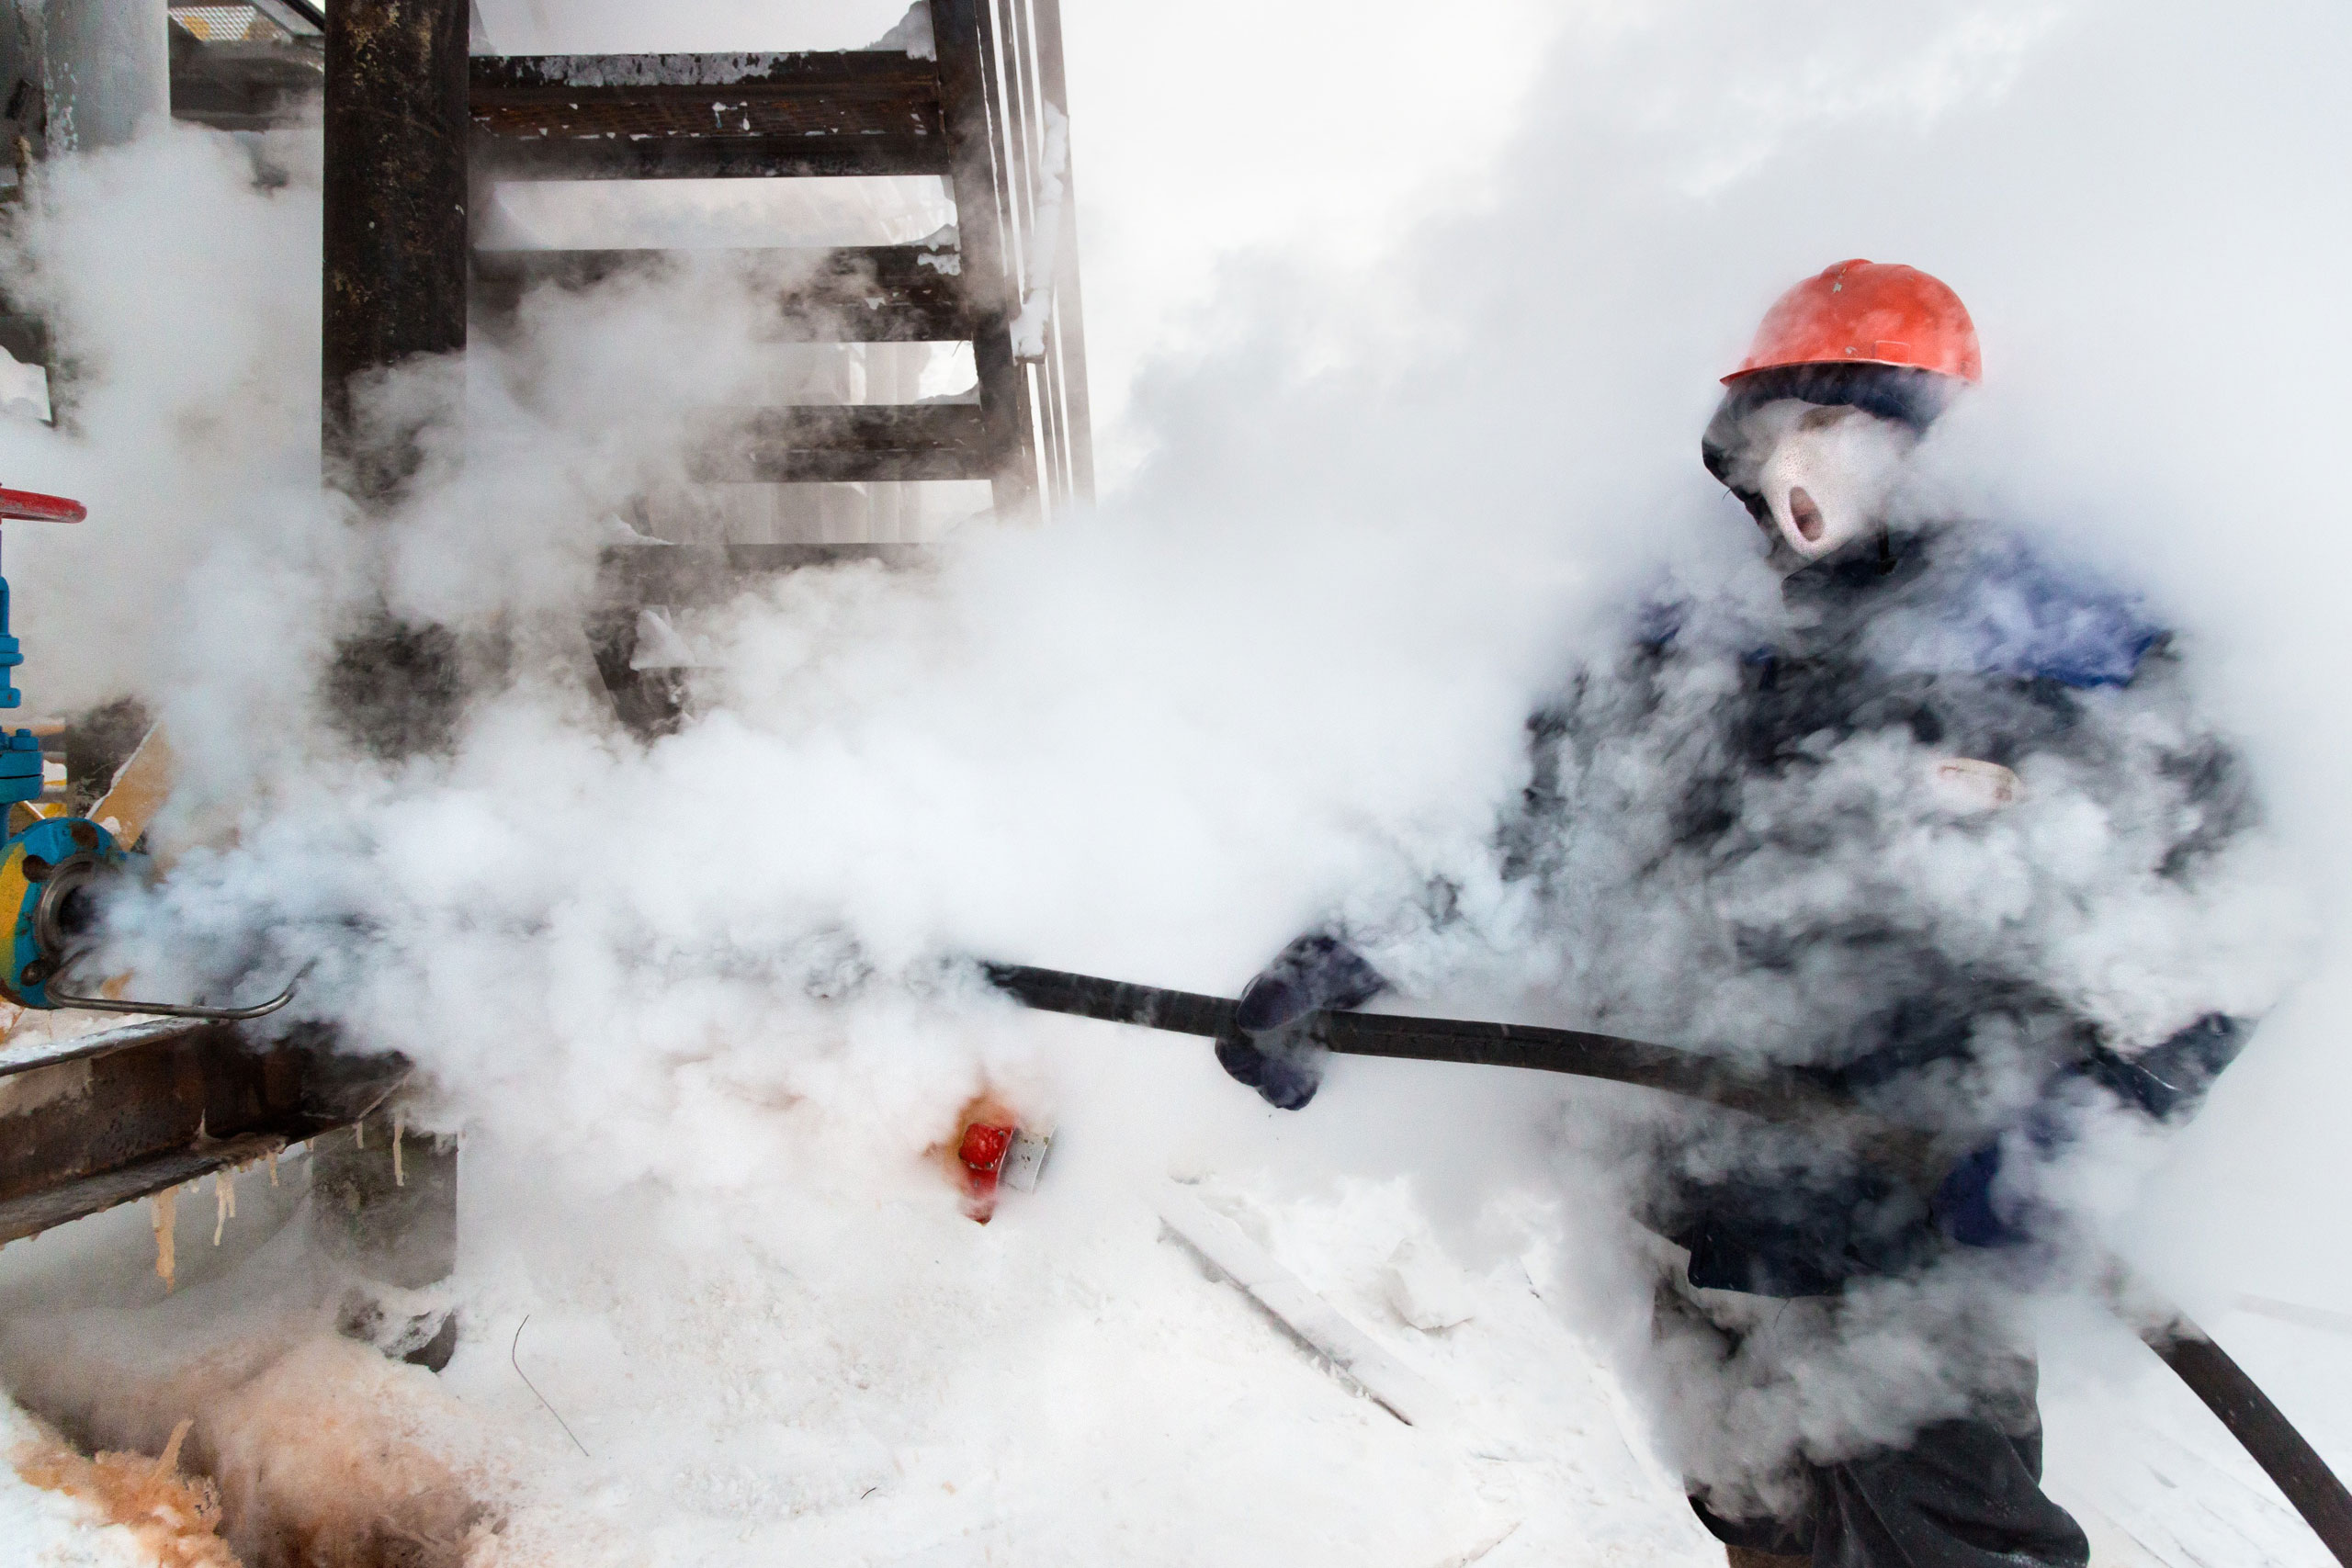 A Russian gas worker sprays steam to unfreeze pipes in Novy Urengoi, Arctic Siberia, Russia, December 2014.